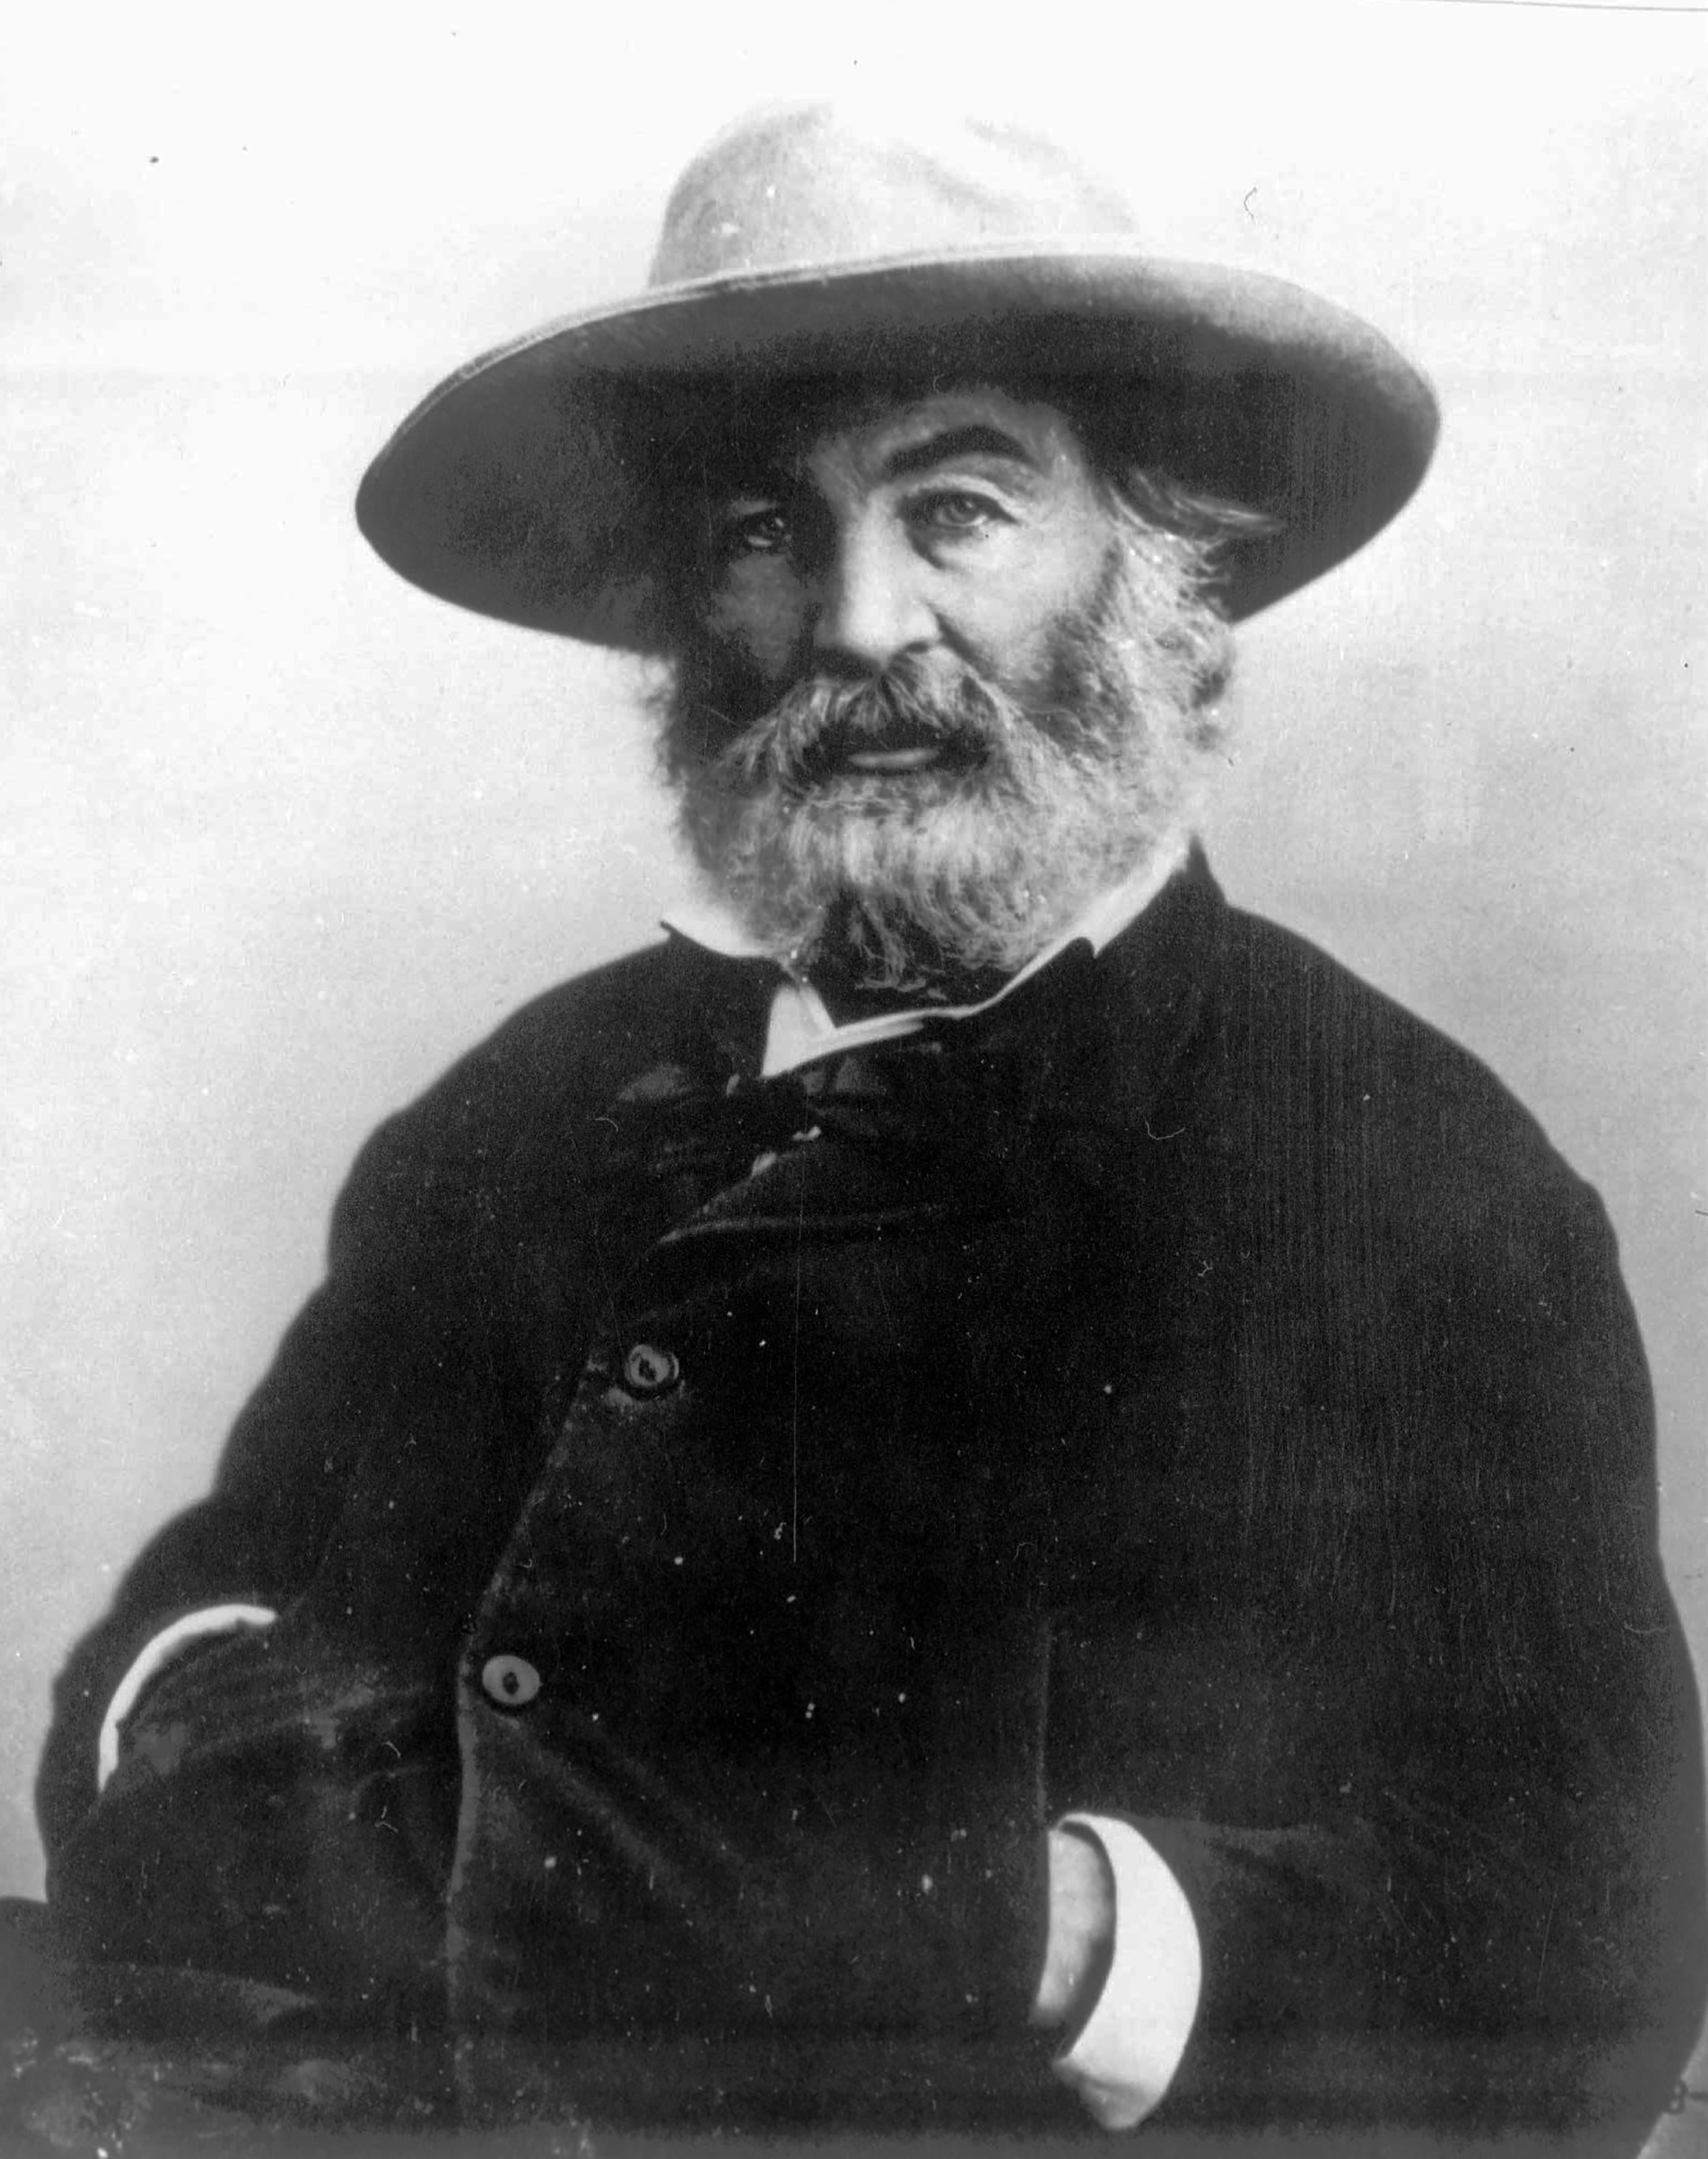 describing the man walt whitman  walt whitman was the man who revolutionized american poetry he was a poet born may 31, 1819, in west hills, new york and can be considered one of the many poets that influenced america and its literature.